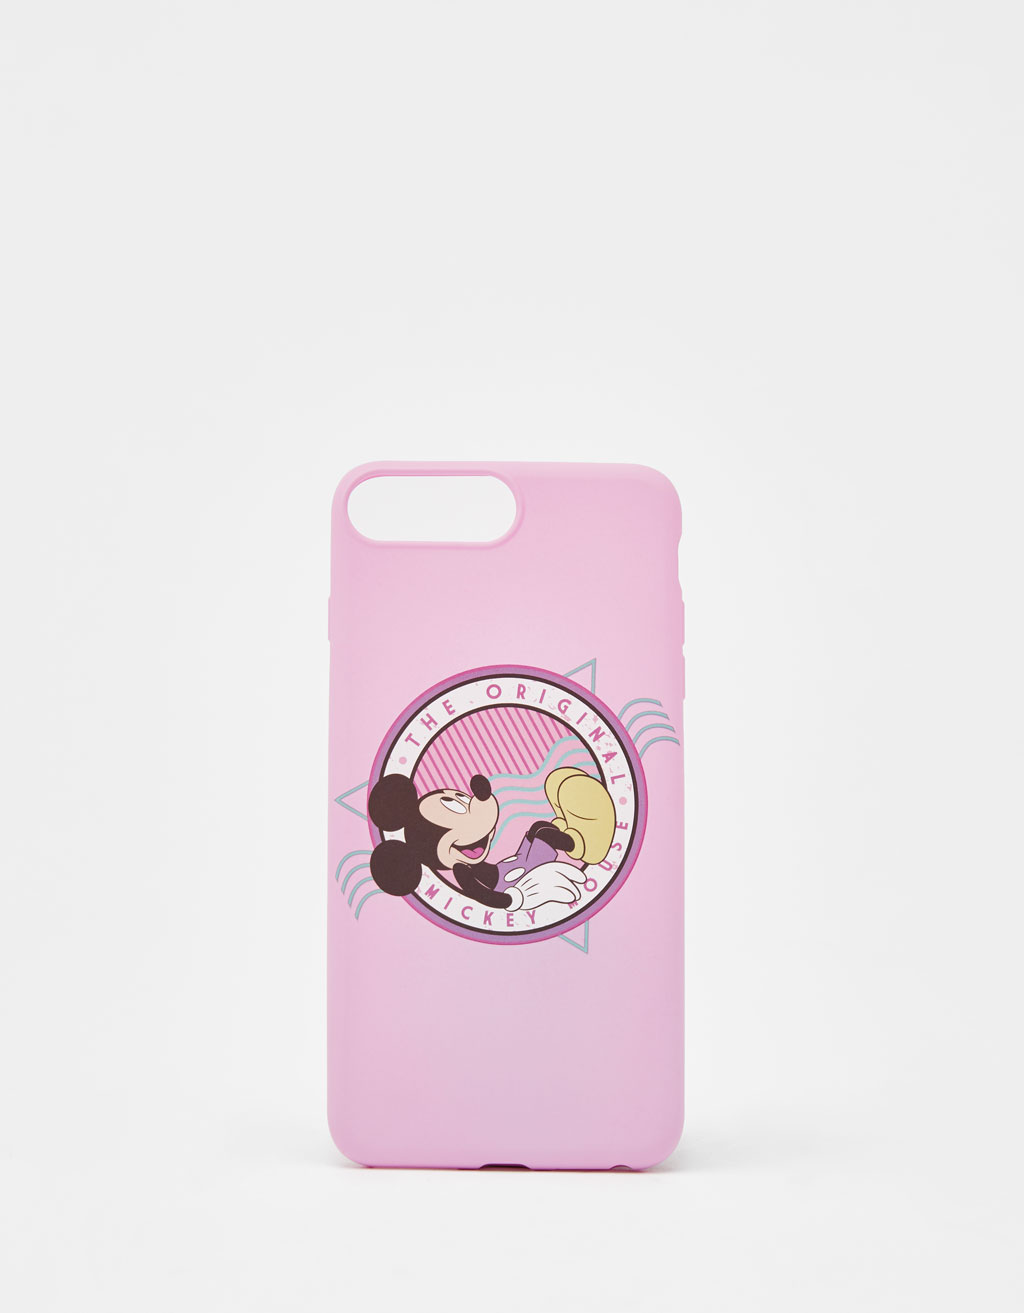 Mickey Mouse iPhone 6 Plus / 7 Plus / 8 Plus case